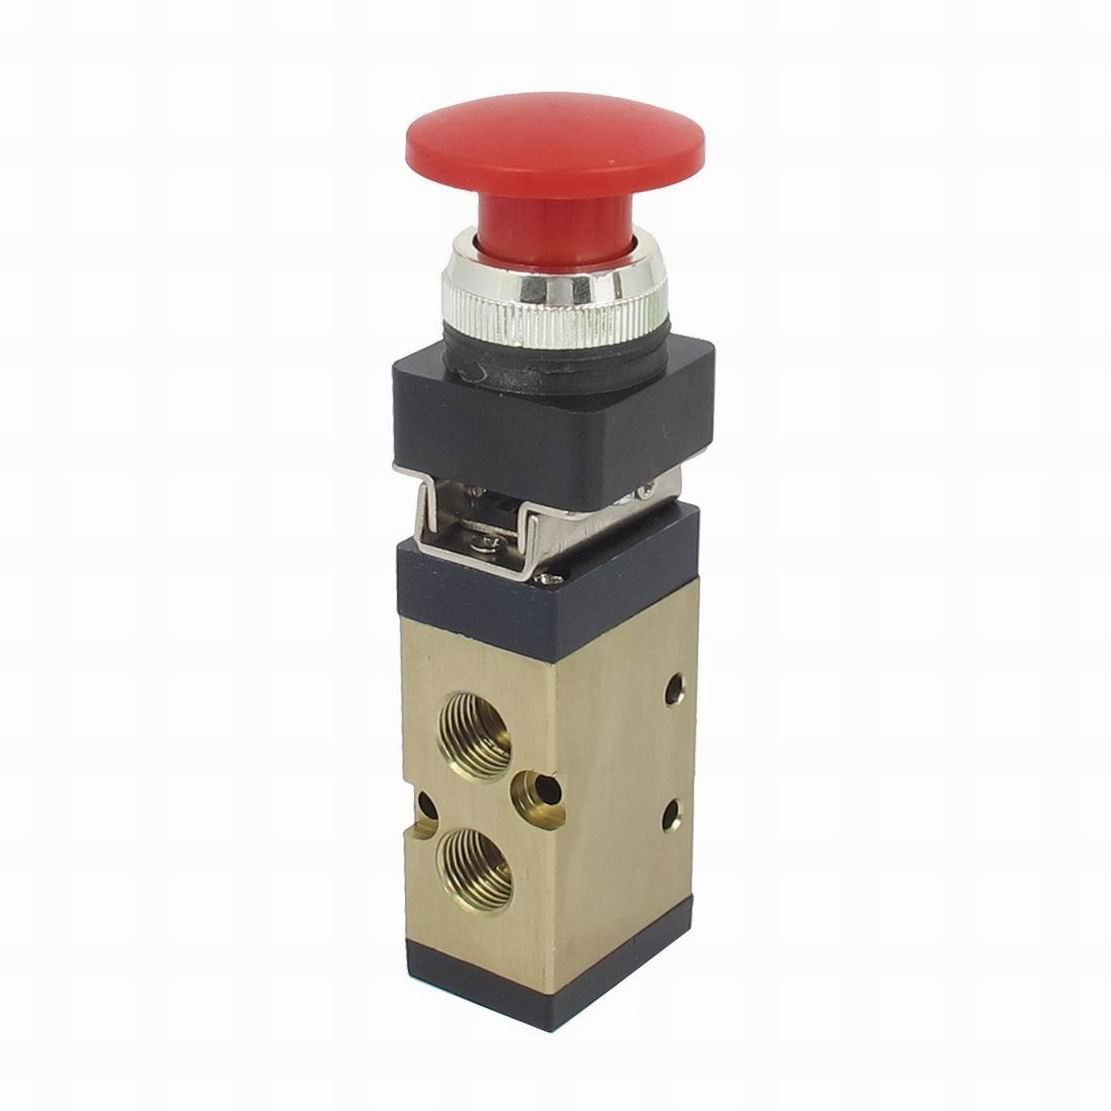 Ucland MSV-86522PB 1/4'' PT 2/5 Way Momentary Red Mushroom Button Air Mechanical Valve by Ucland